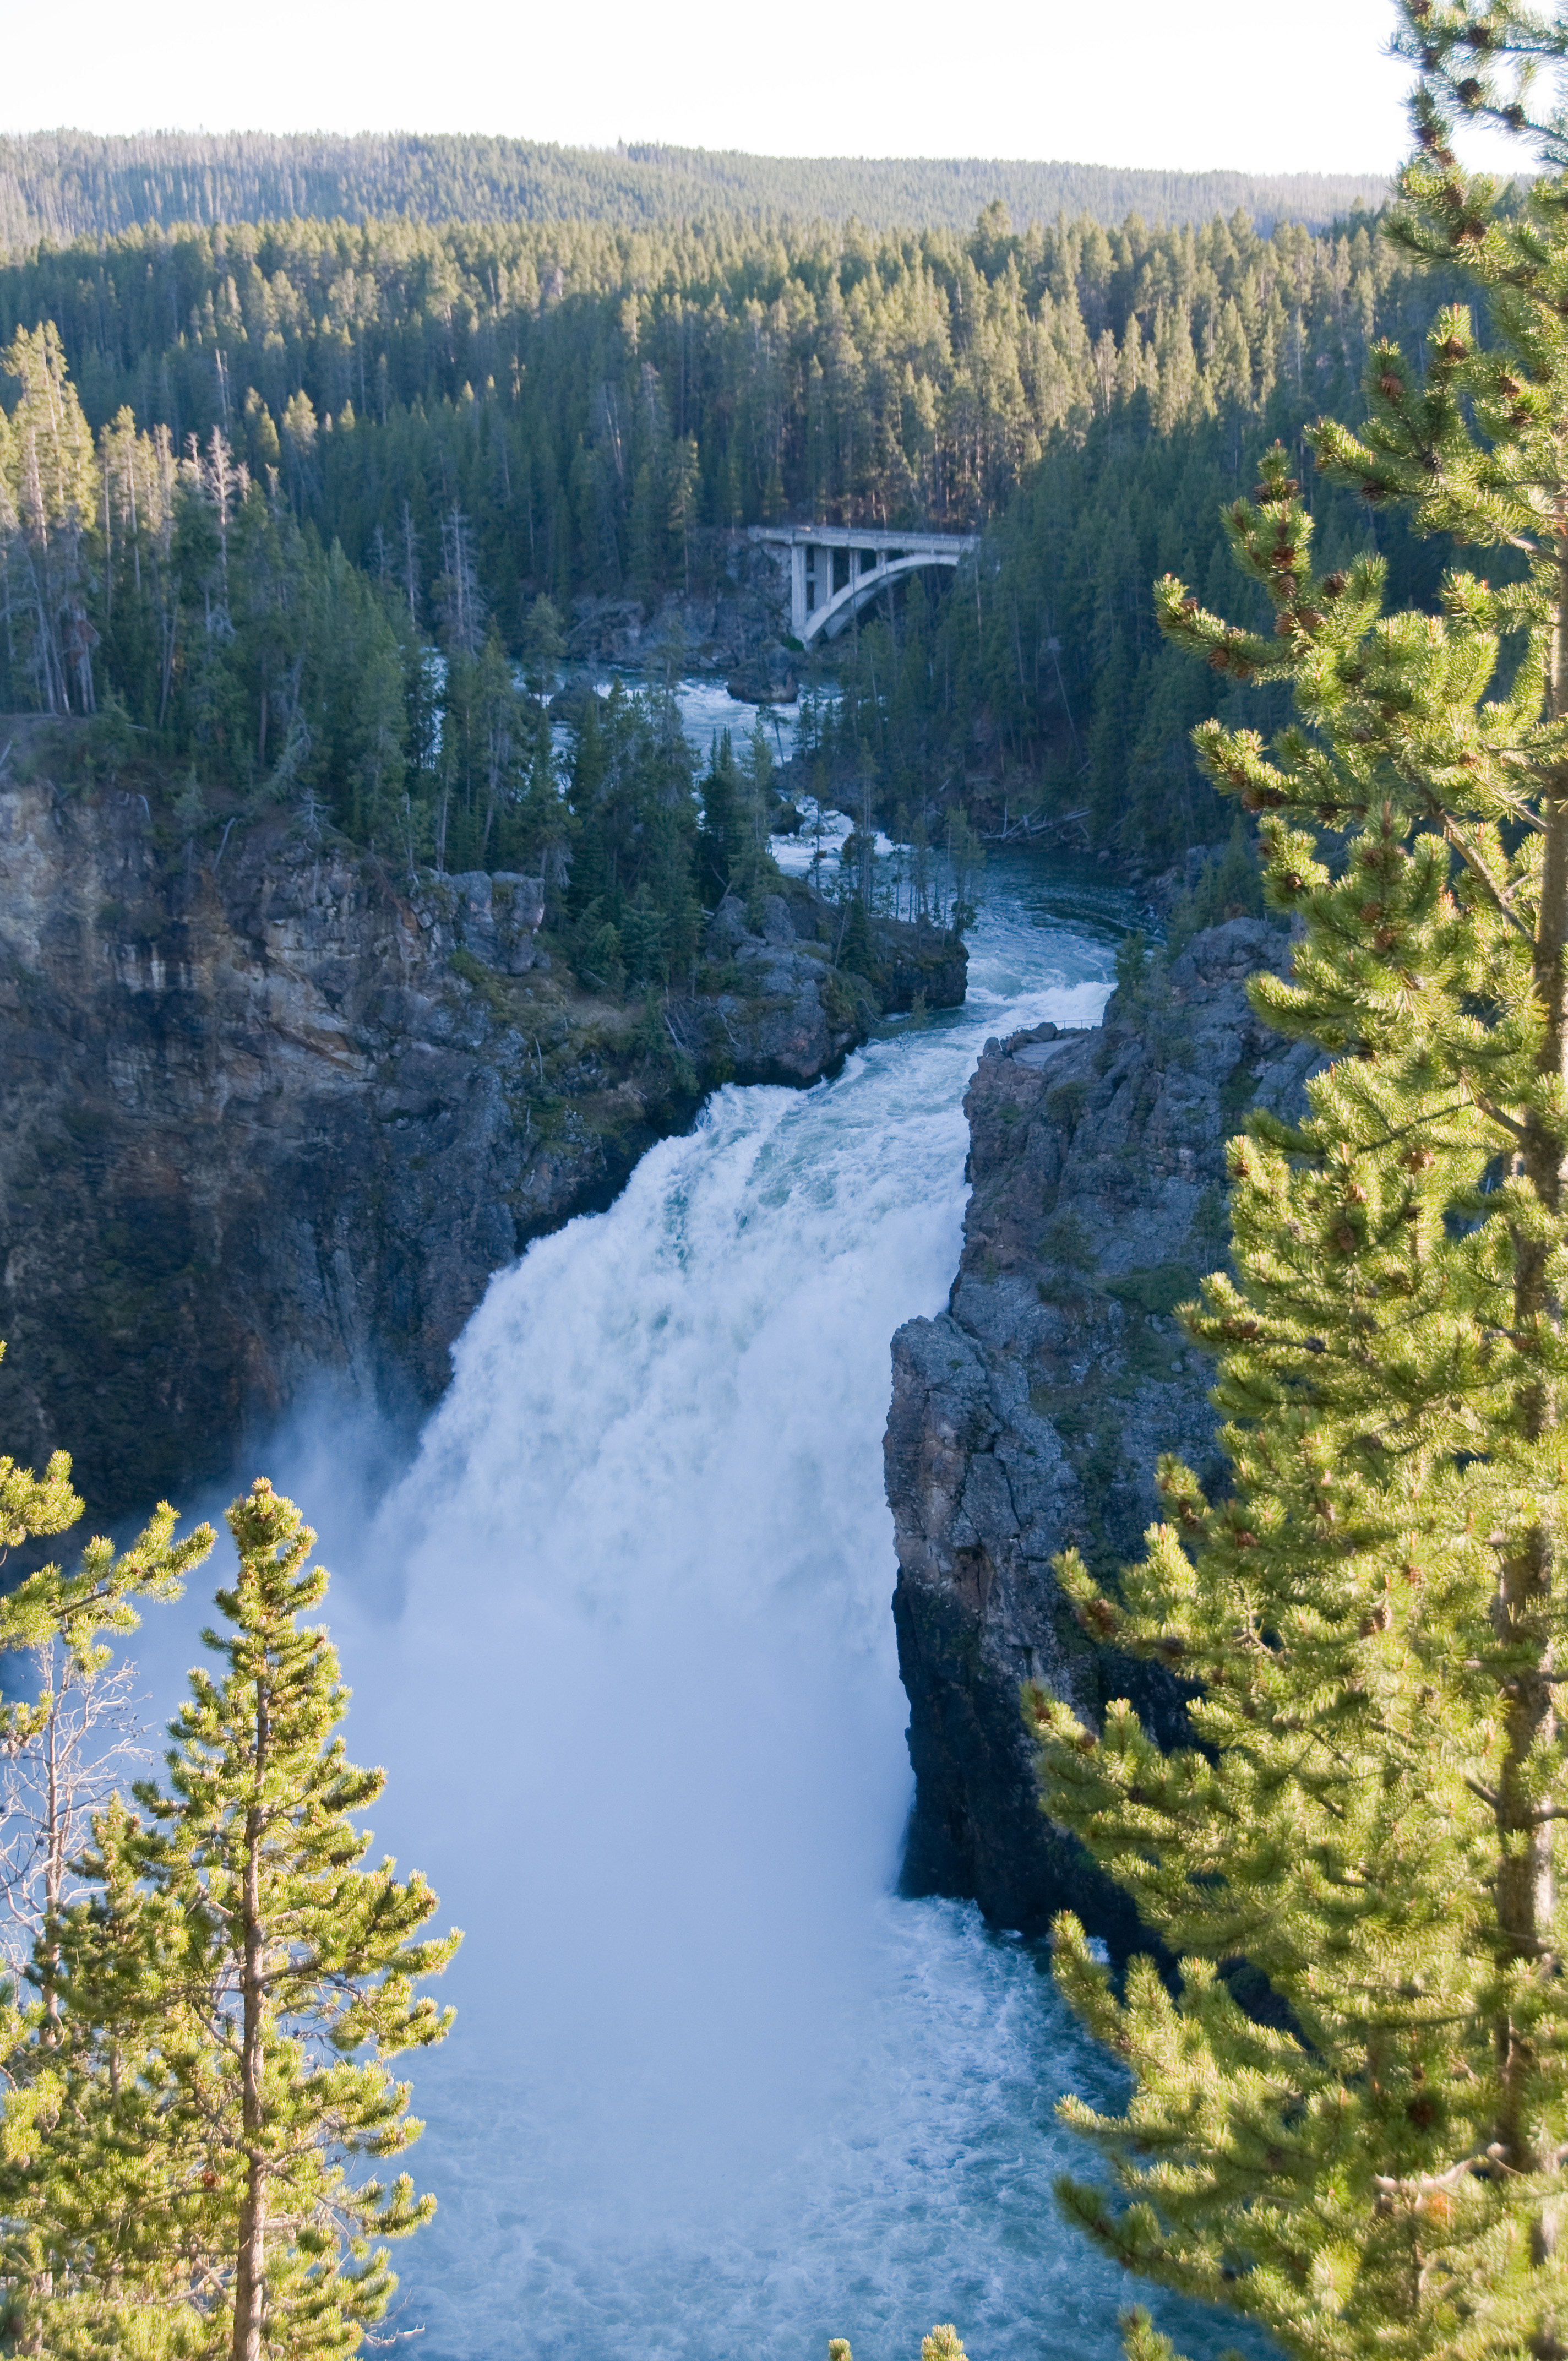 Majestic Photos Of The Yellowstone River Montana Boomsbeat